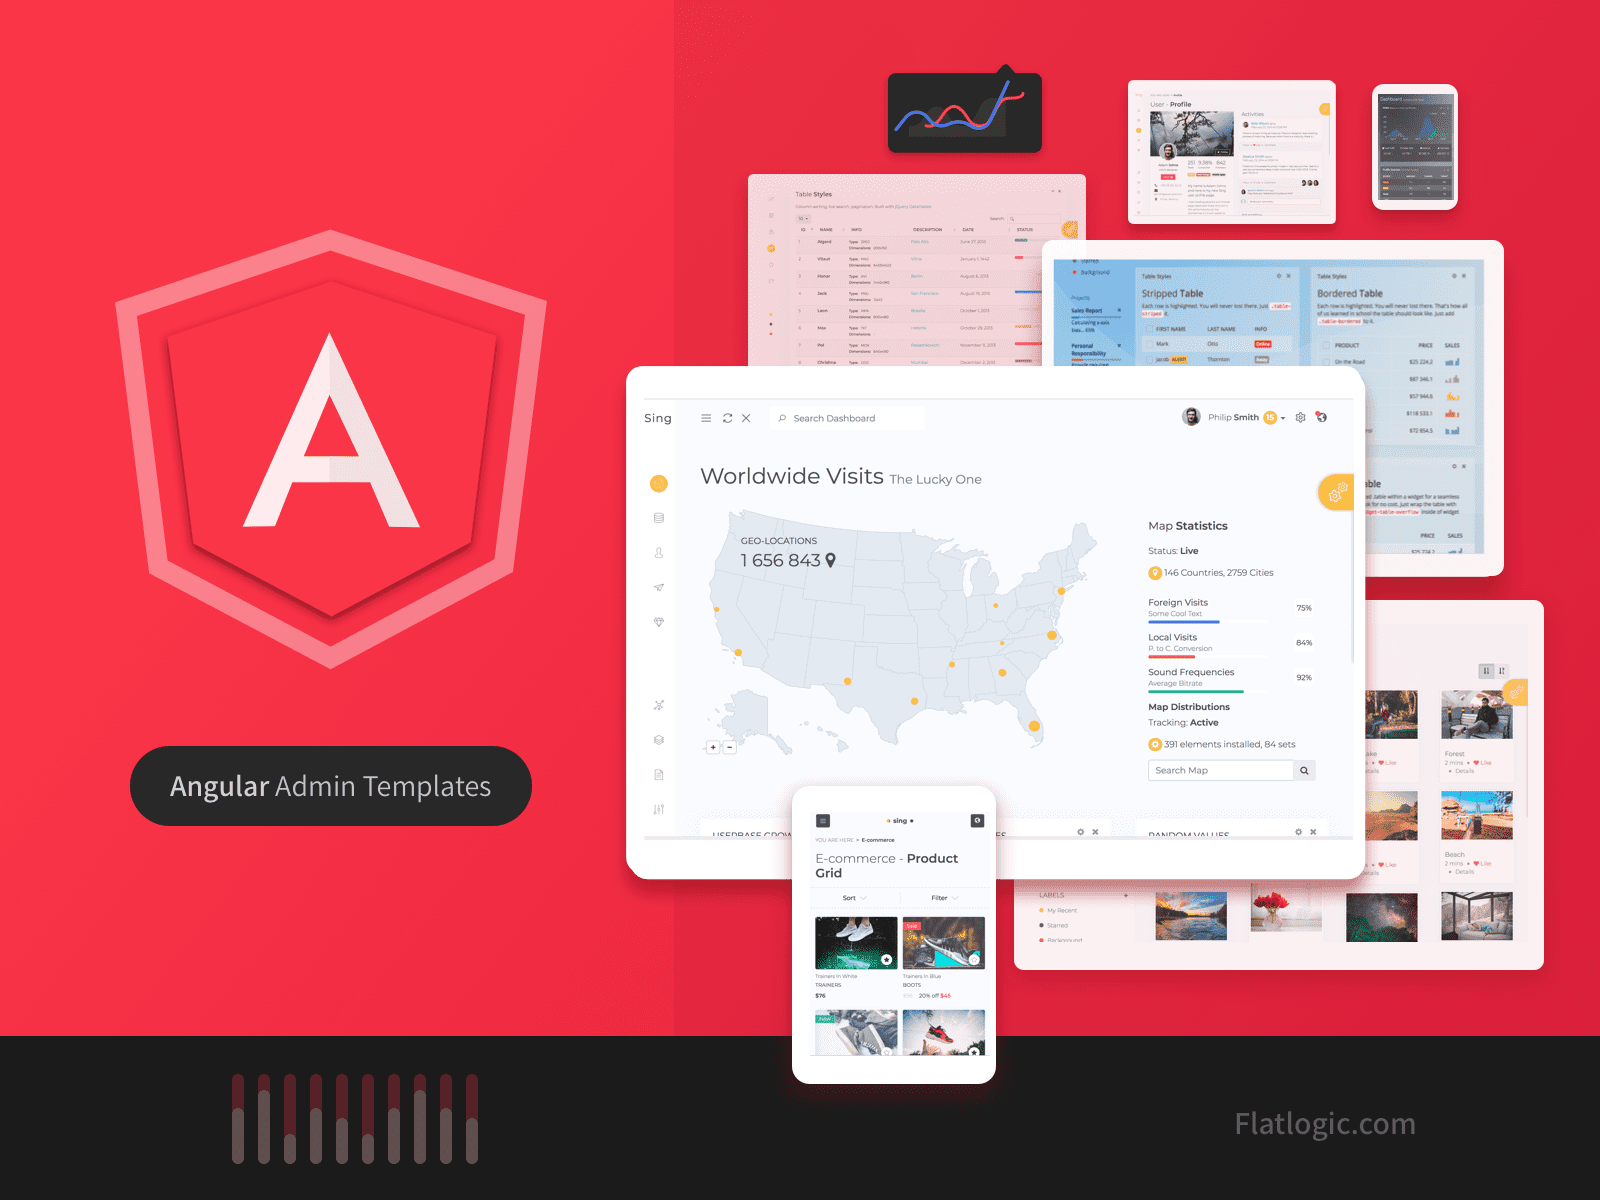 Top Angular Admin Templates in 2019